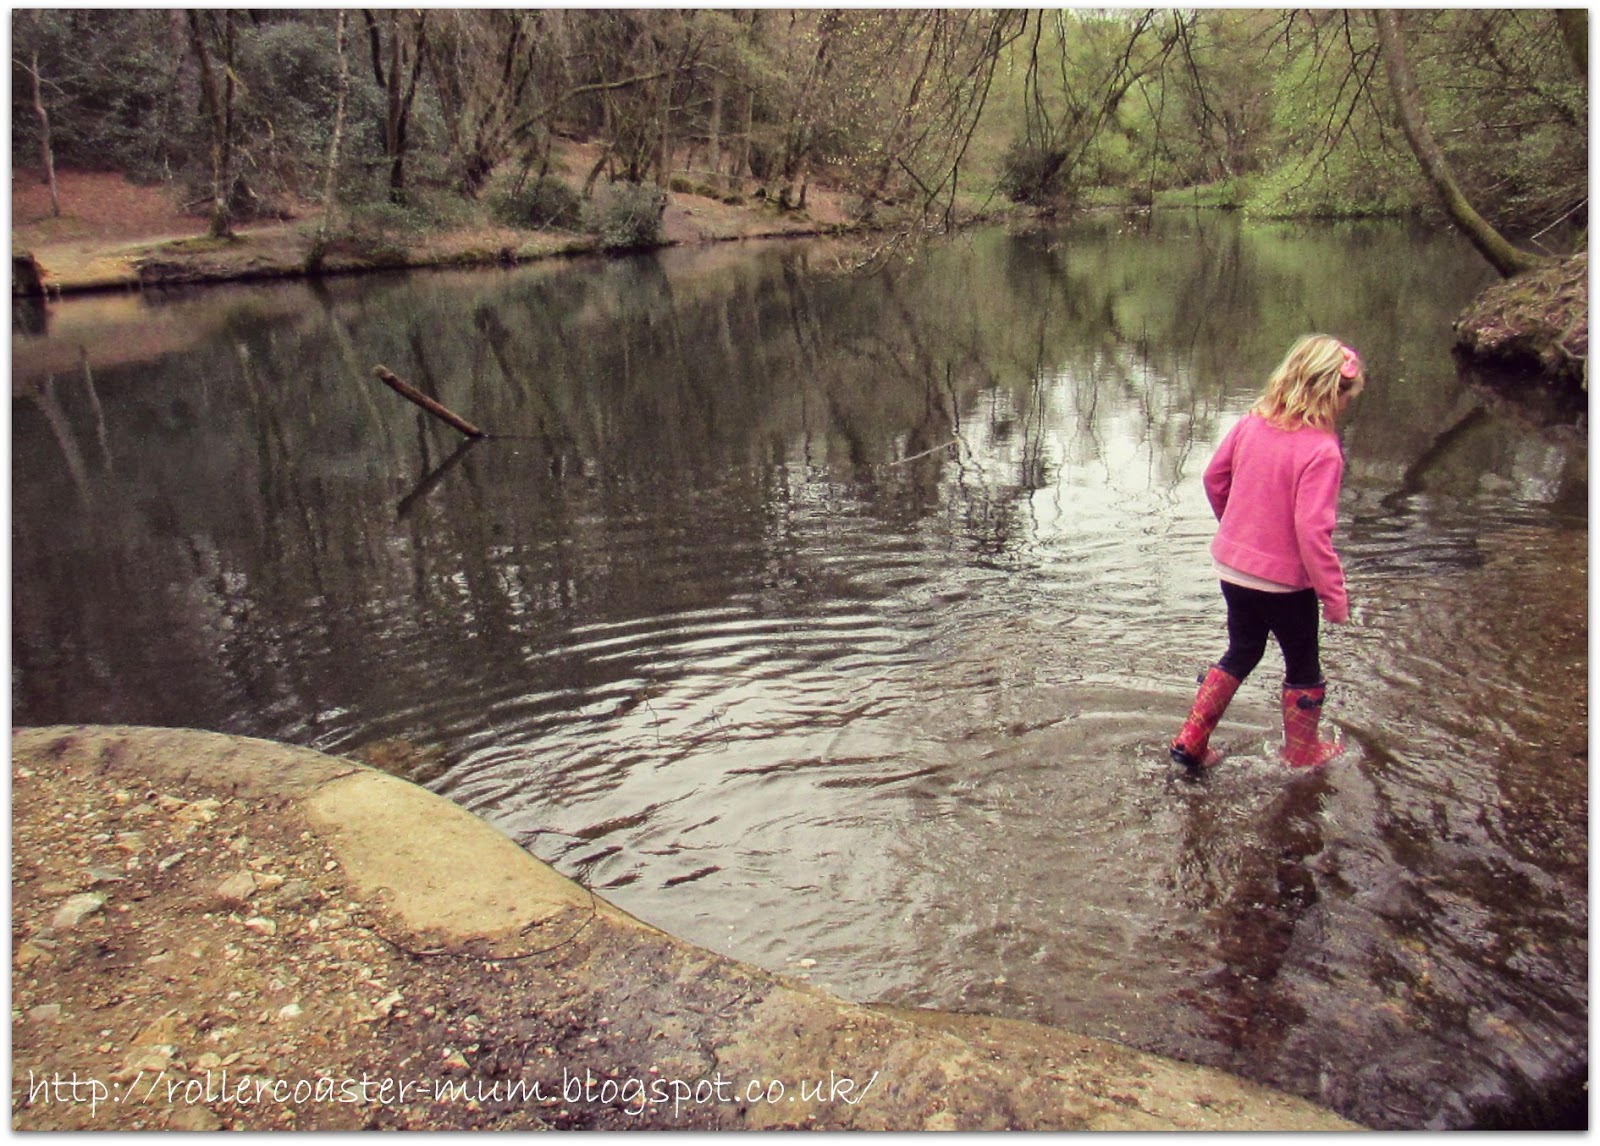 always time for a paddle at National Trust Waggoners Wells